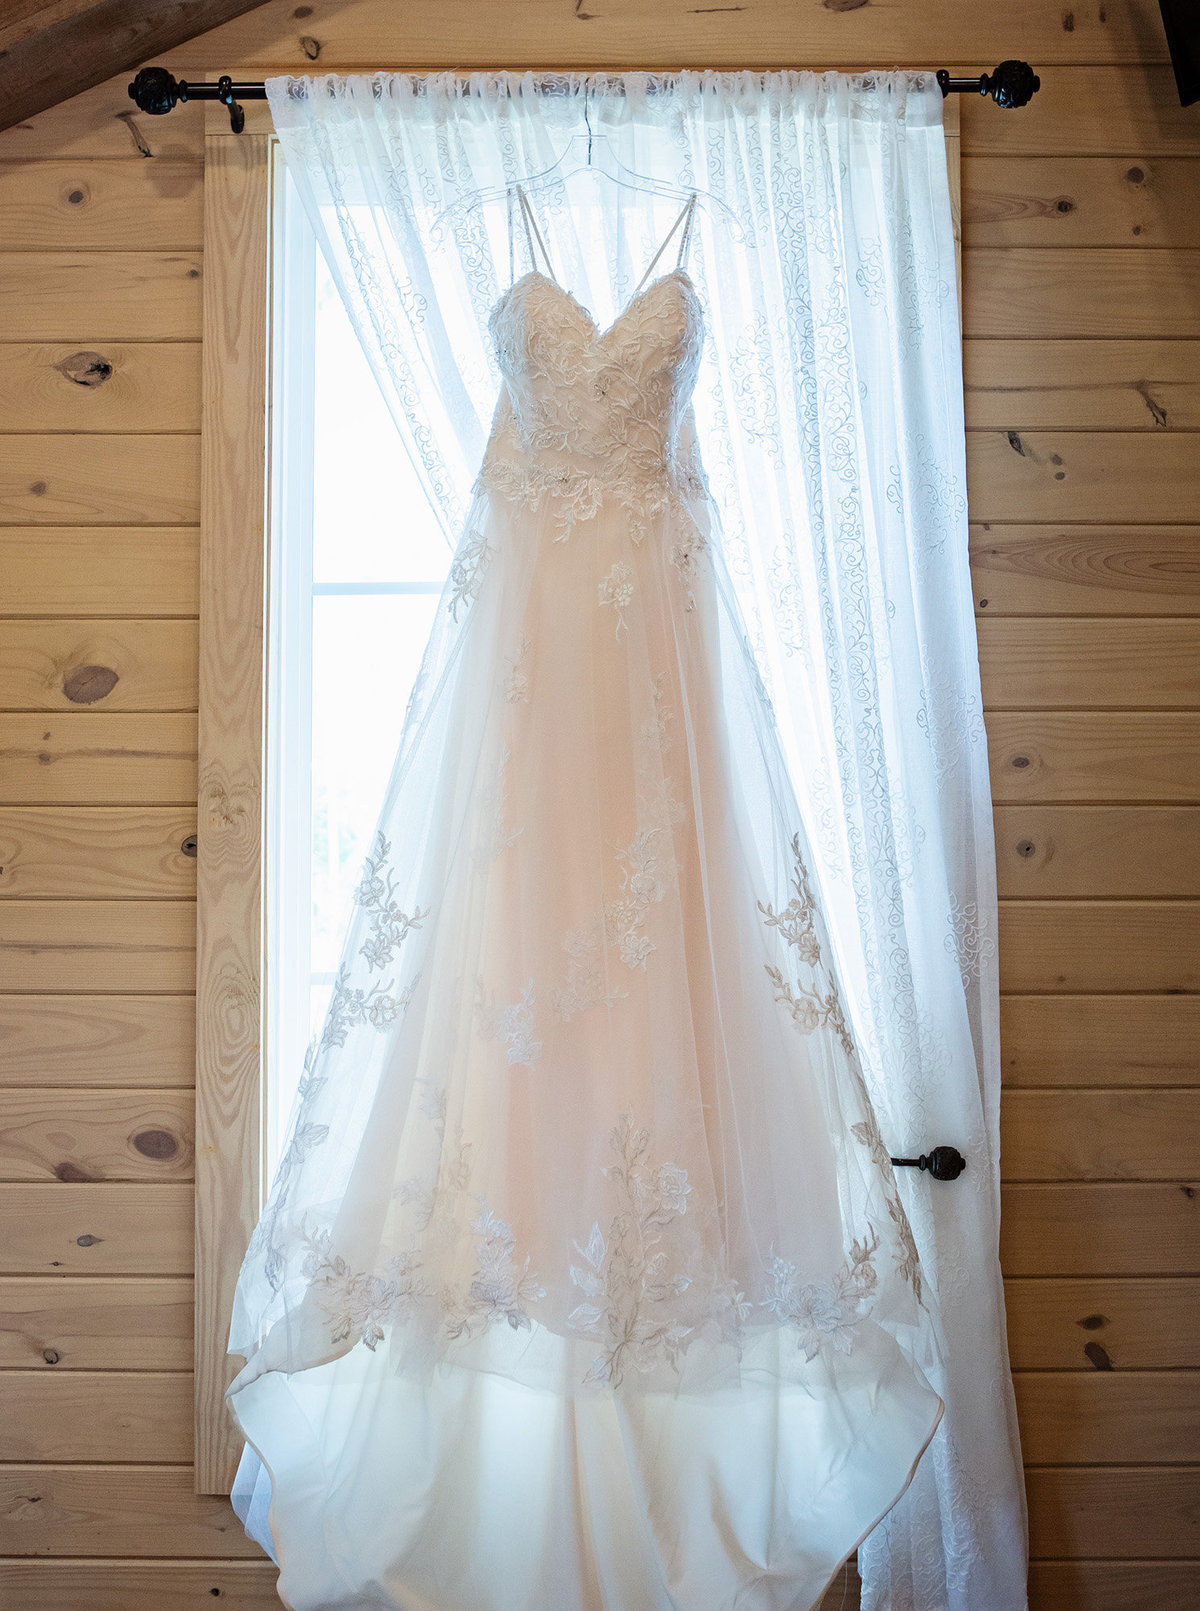 wedding-dress-hanging-in-window